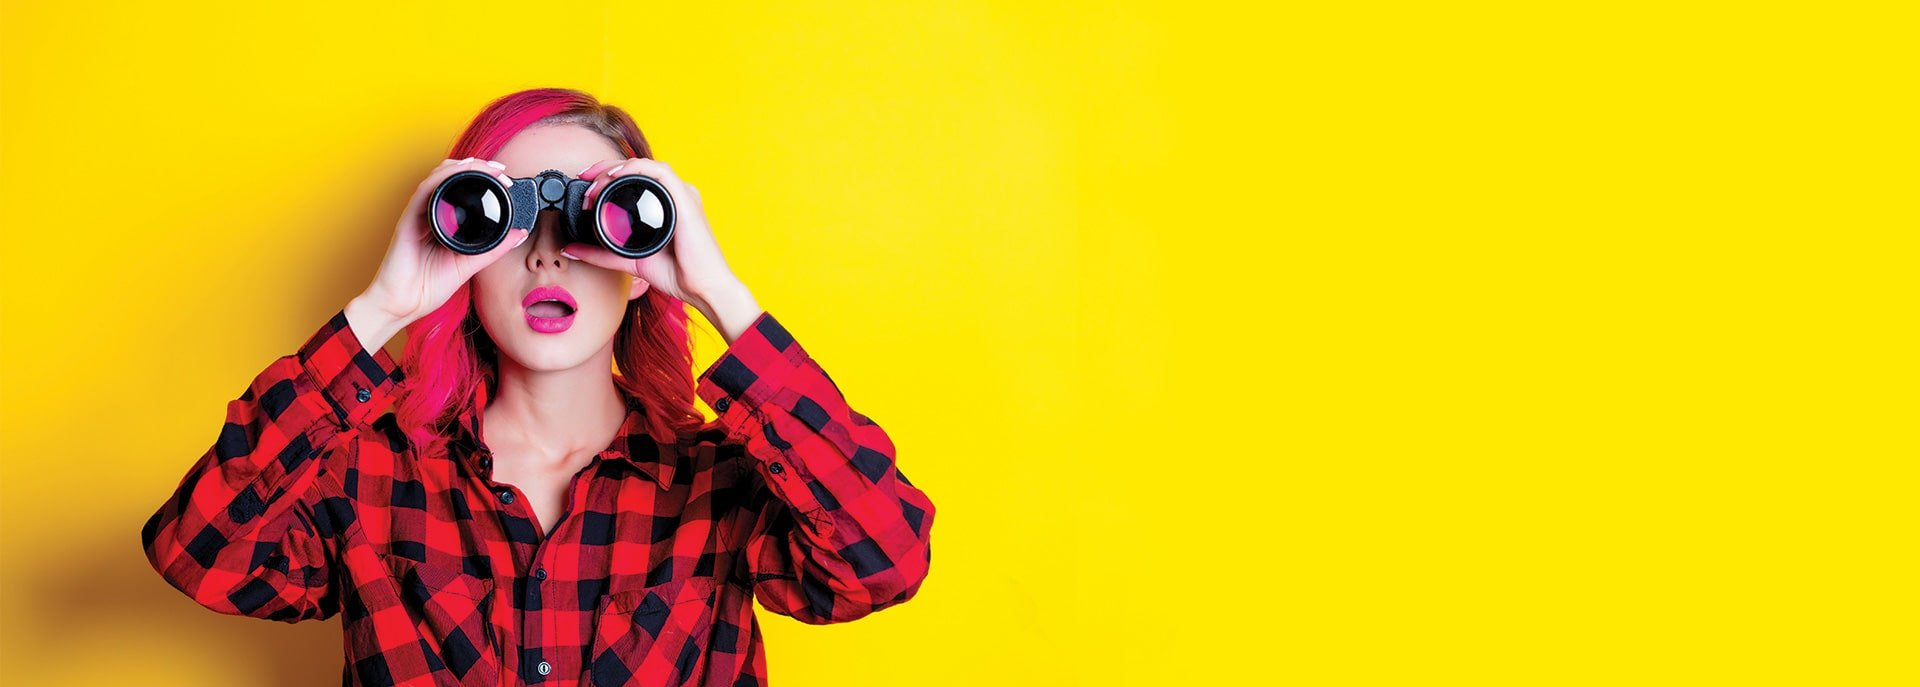 Young woman holding up Binoculars in front of a yellow background